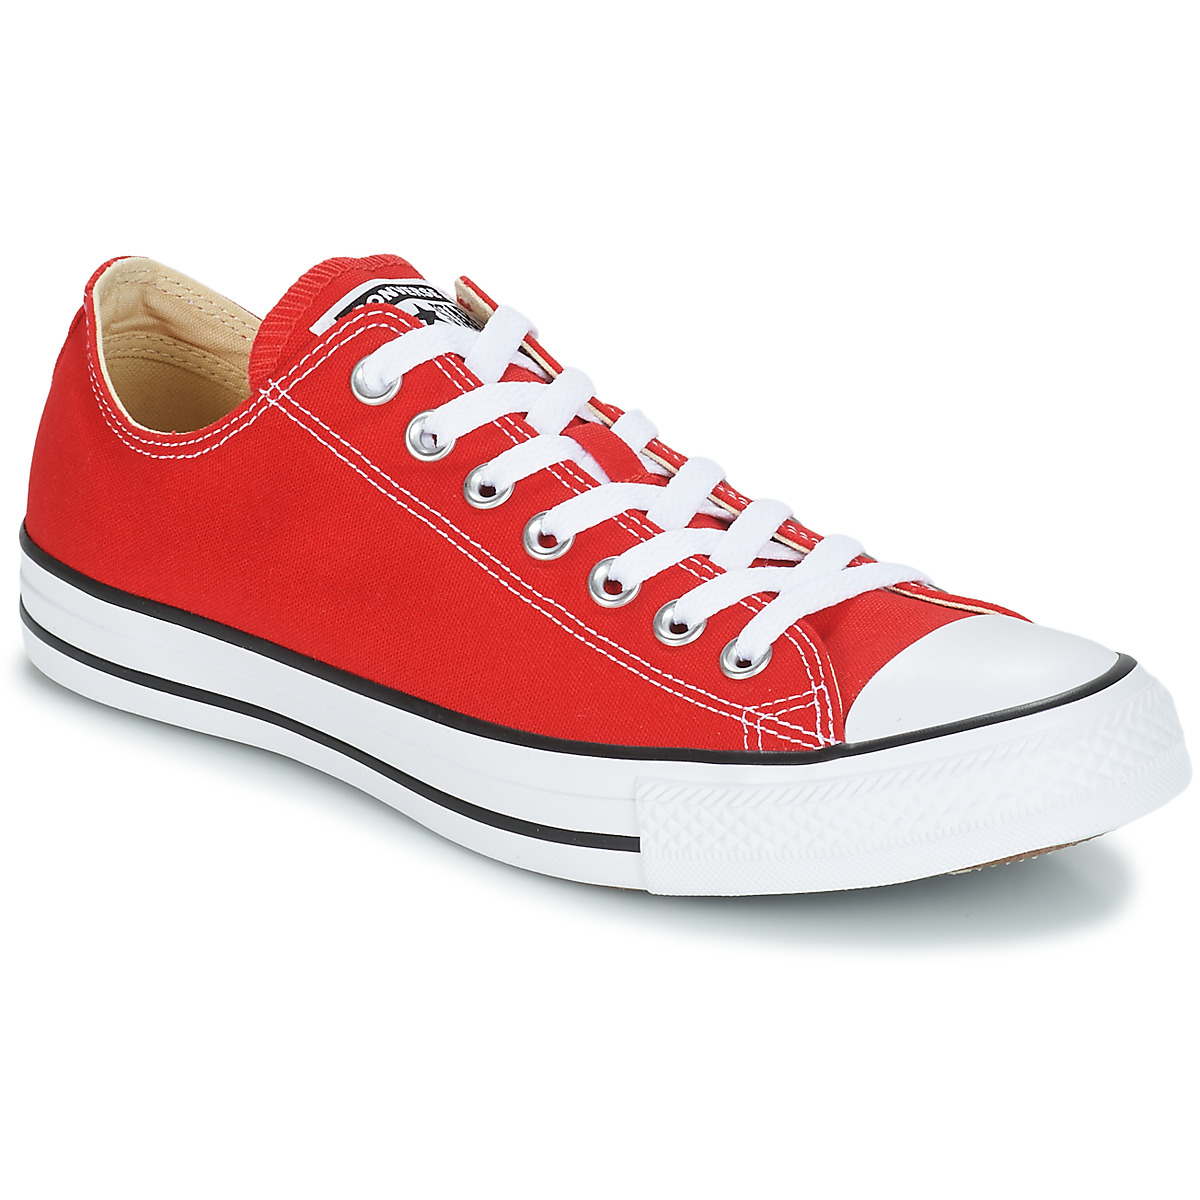 converse all star core ox red free delivery with spartoo. Black Bedroom Furniture Sets. Home Design Ideas